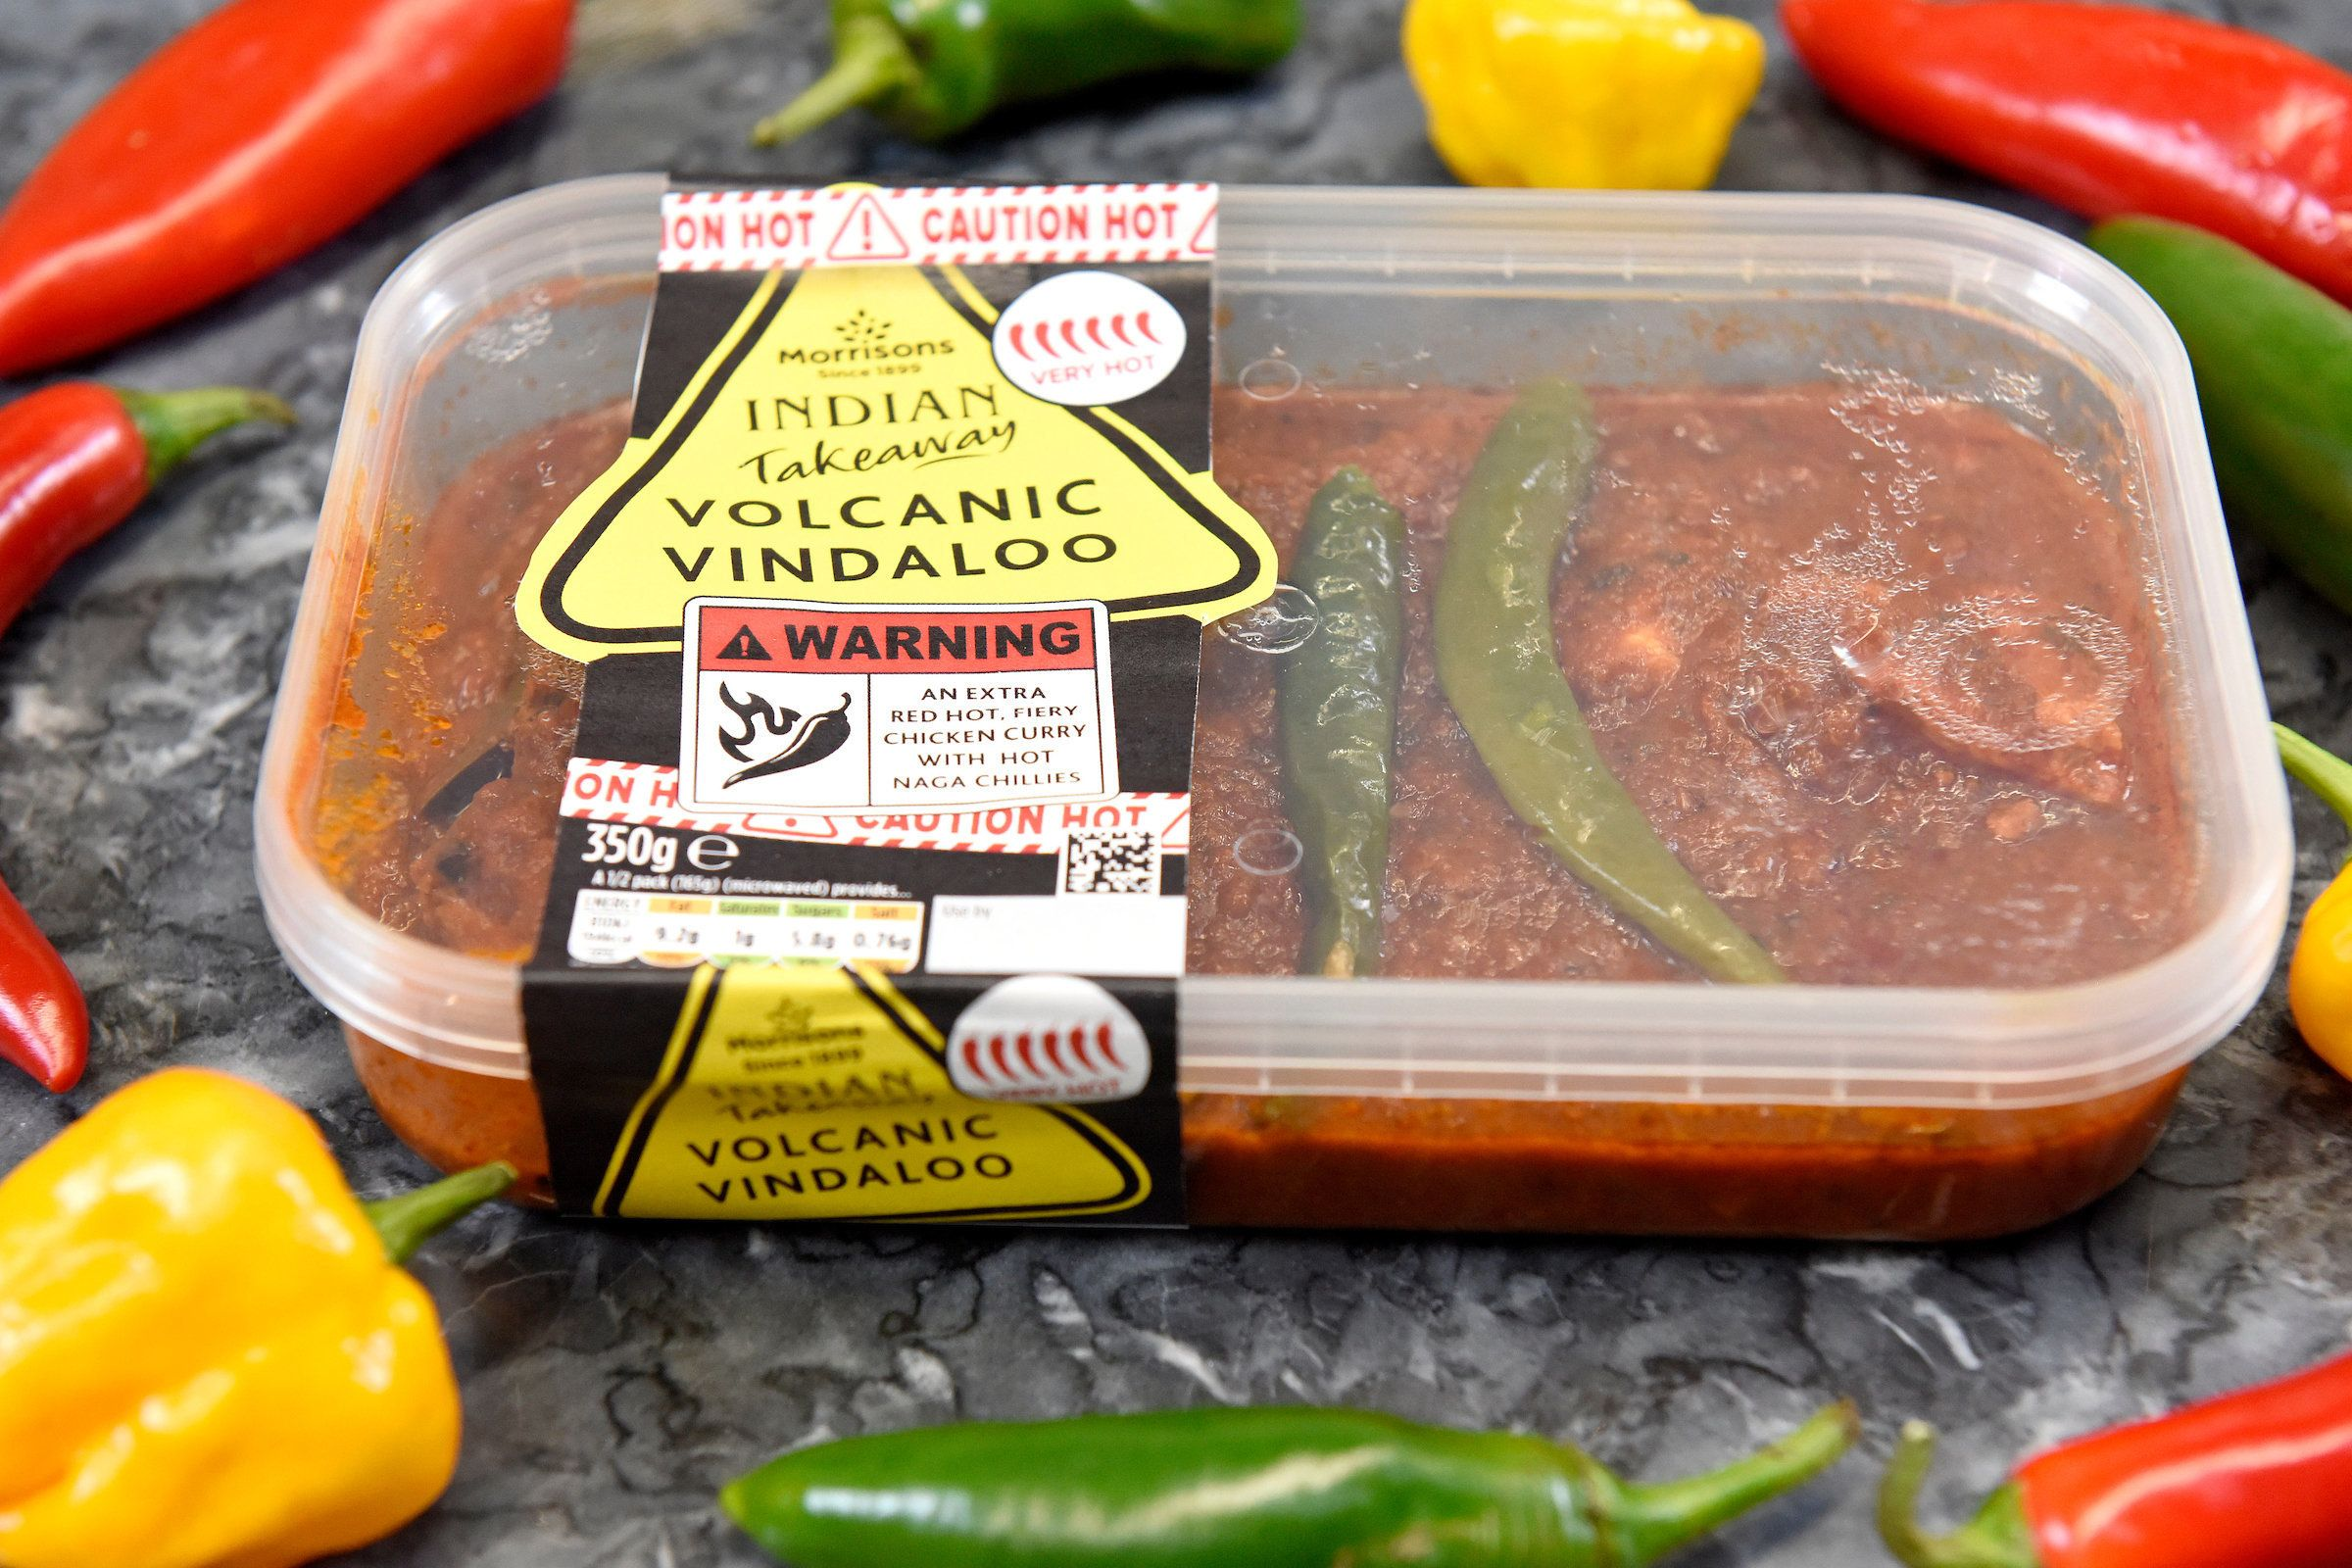 Morrisons releases hottest ever supermarket curry - featuring notorious naga chillis